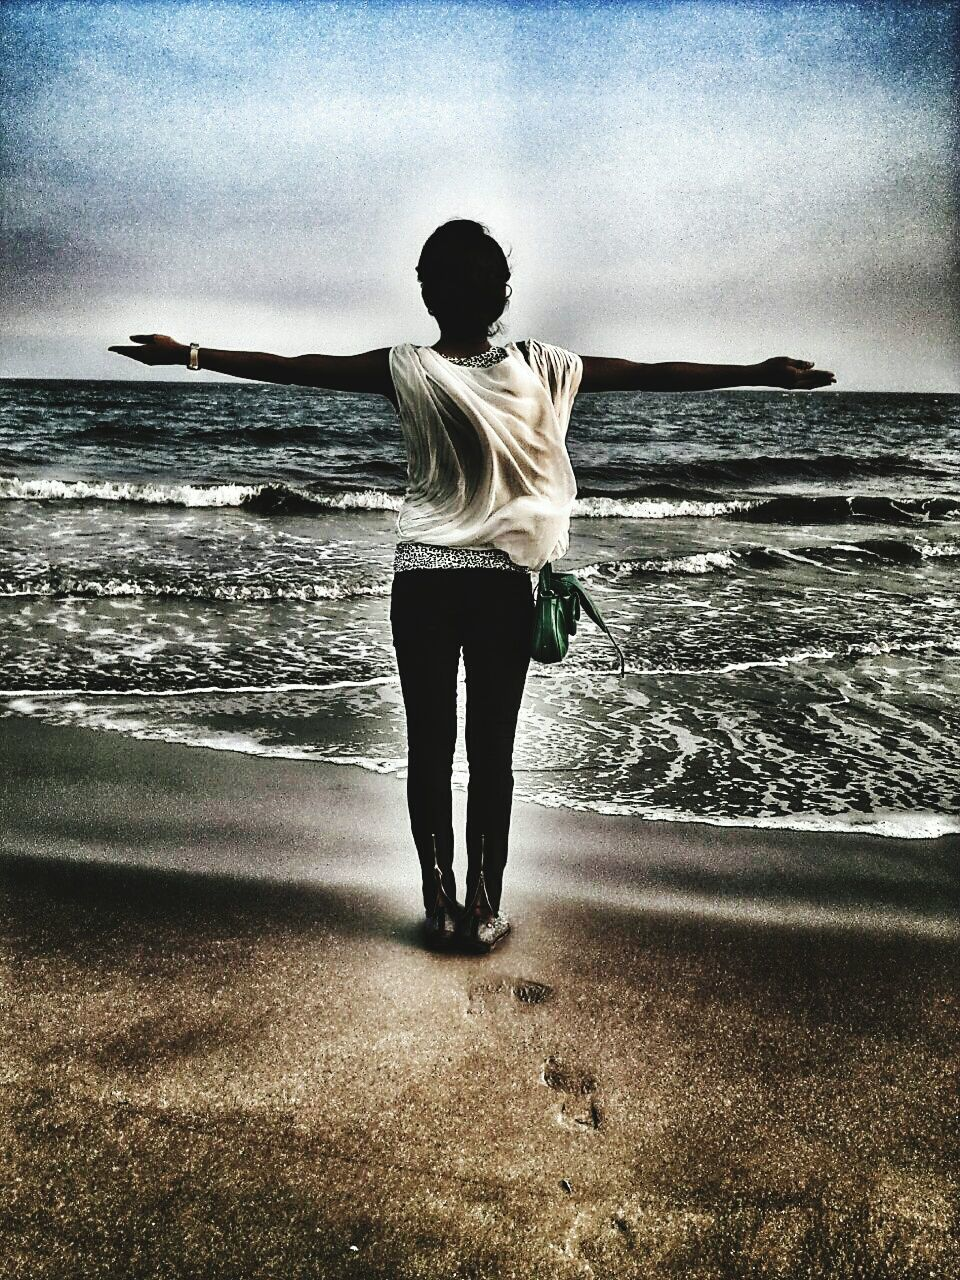 sea, real people, full length, horizon over water, water, one person, beach, leisure activity, standing, lifestyles, sky, rear view, nature, outdoors, young adult, day, young women, balance, tranquility, tranquil scene, scenics, beauty in nature, women, cloud - sky, sand, wave, energetic, people